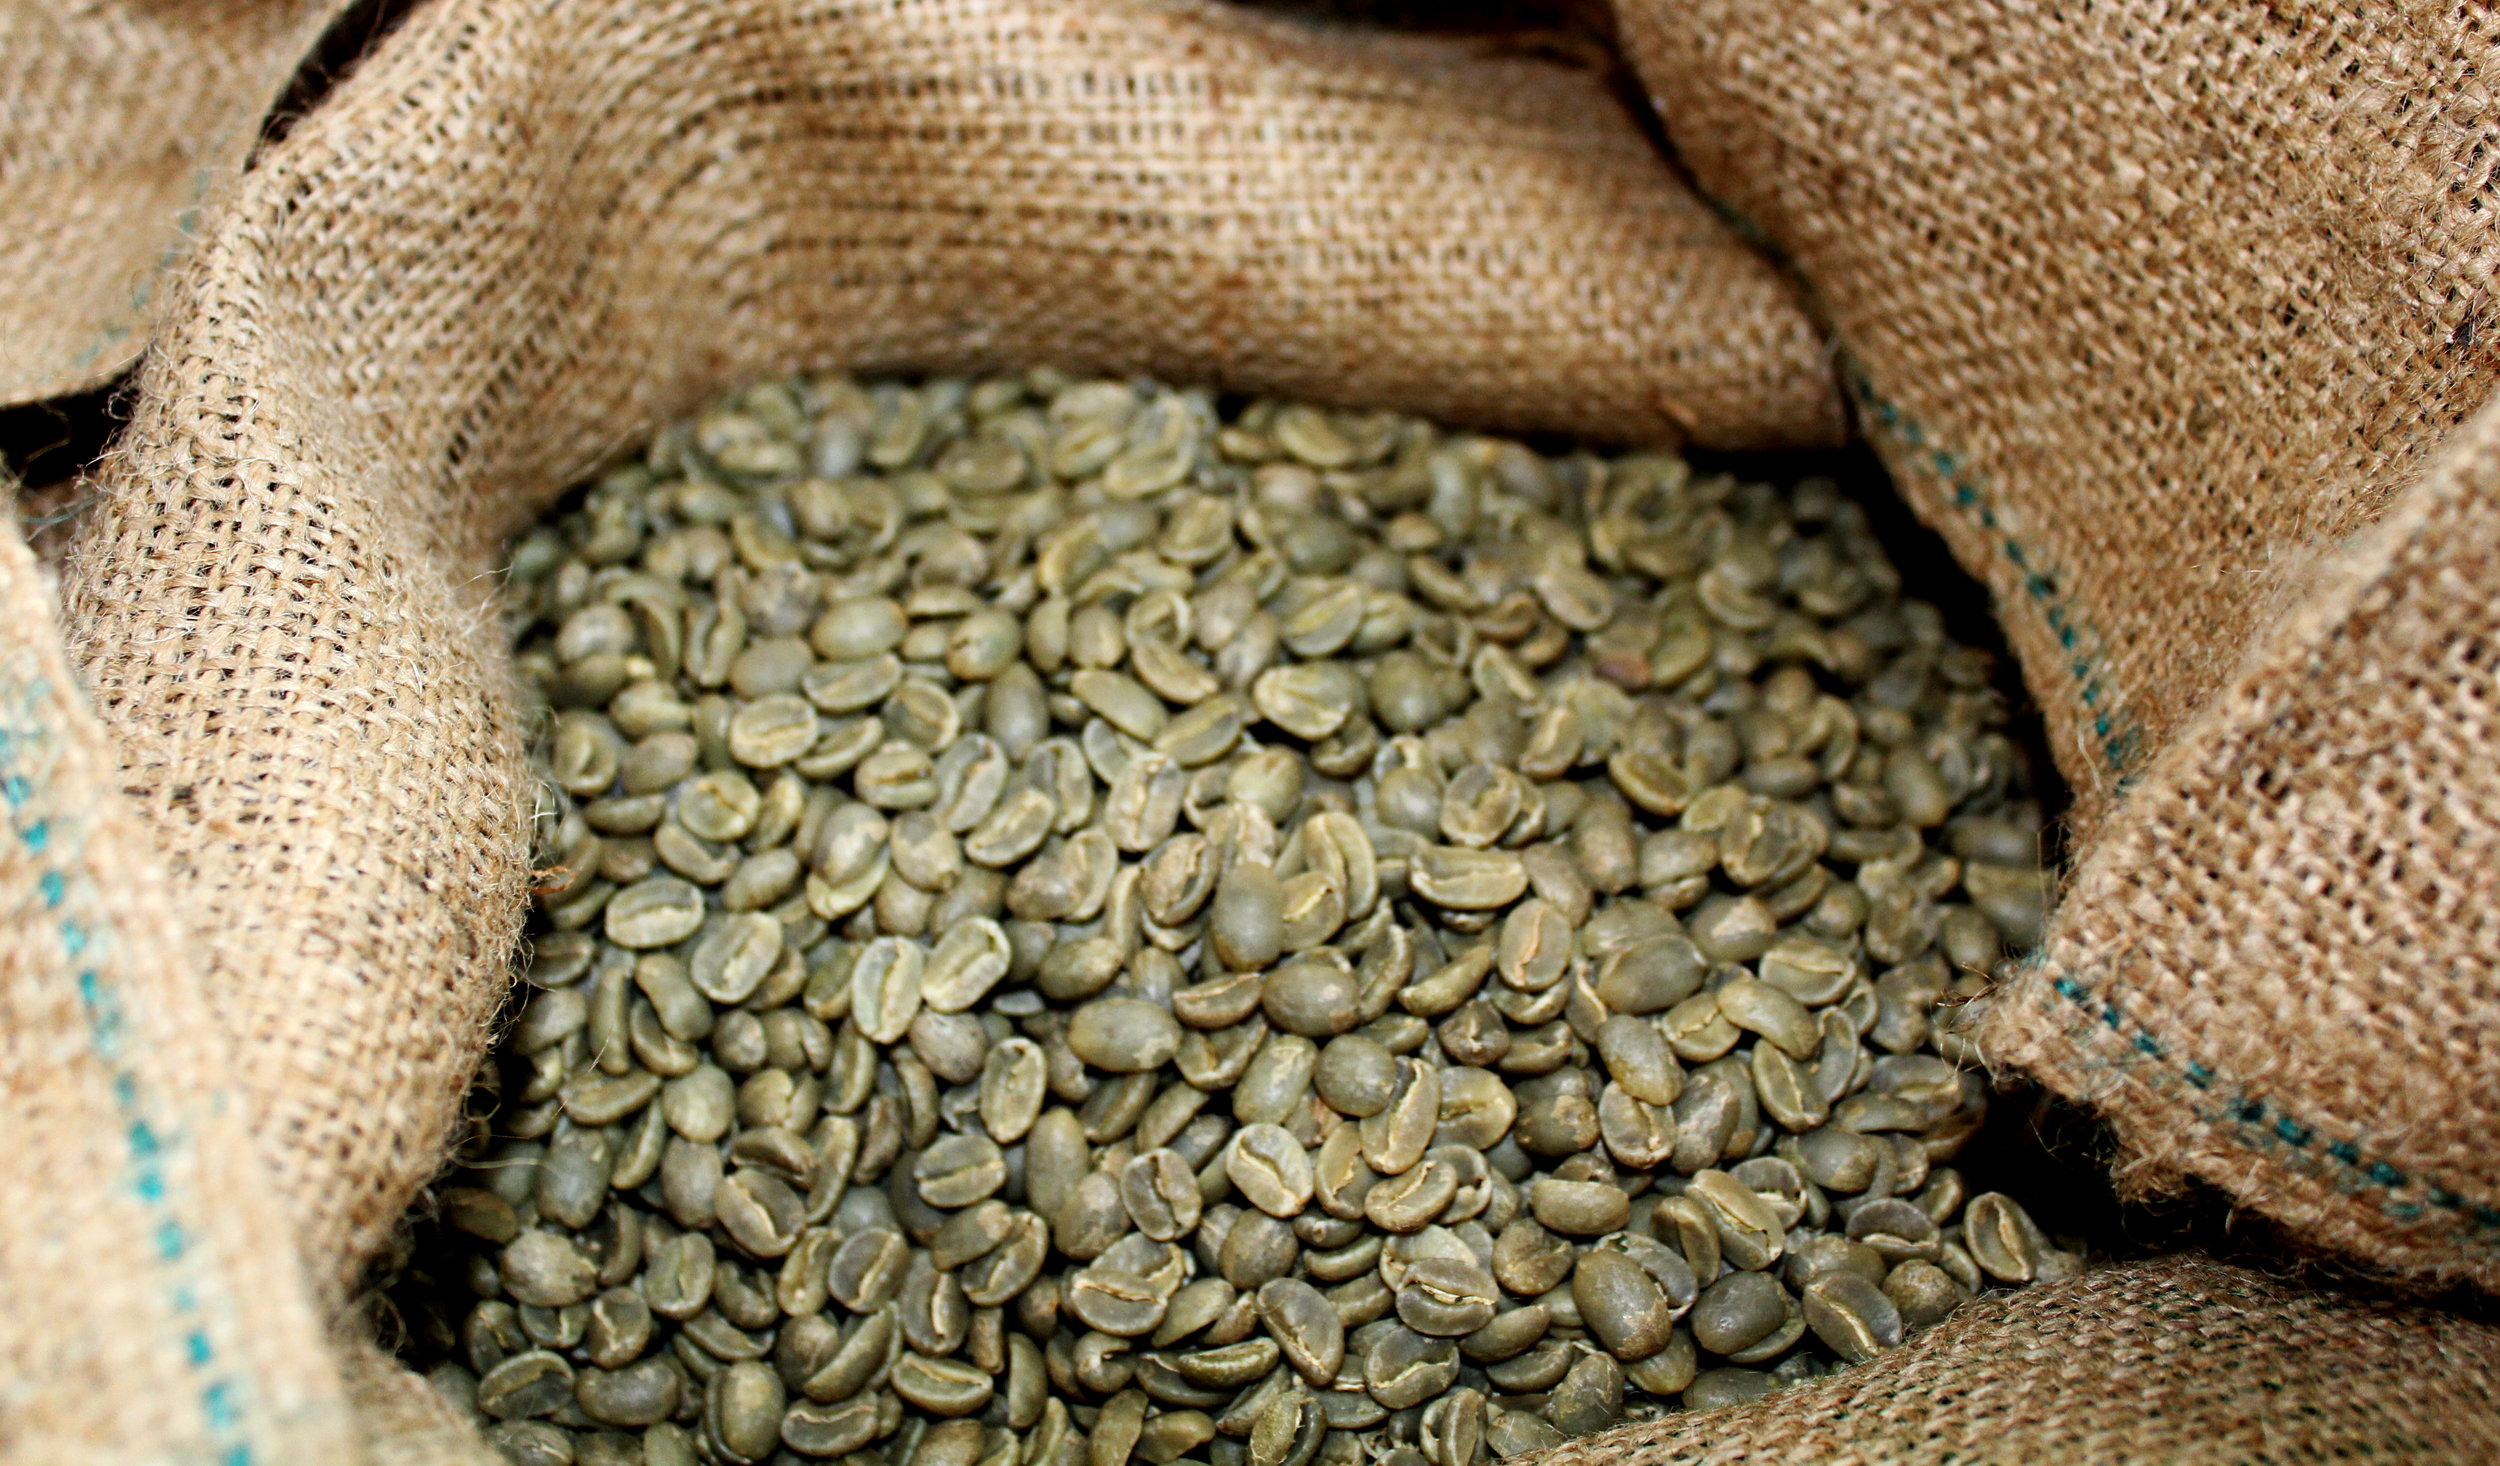 The decaffeination process is applied to green coffee beans, before being roasted. PHOTO: Dayva Keolanui